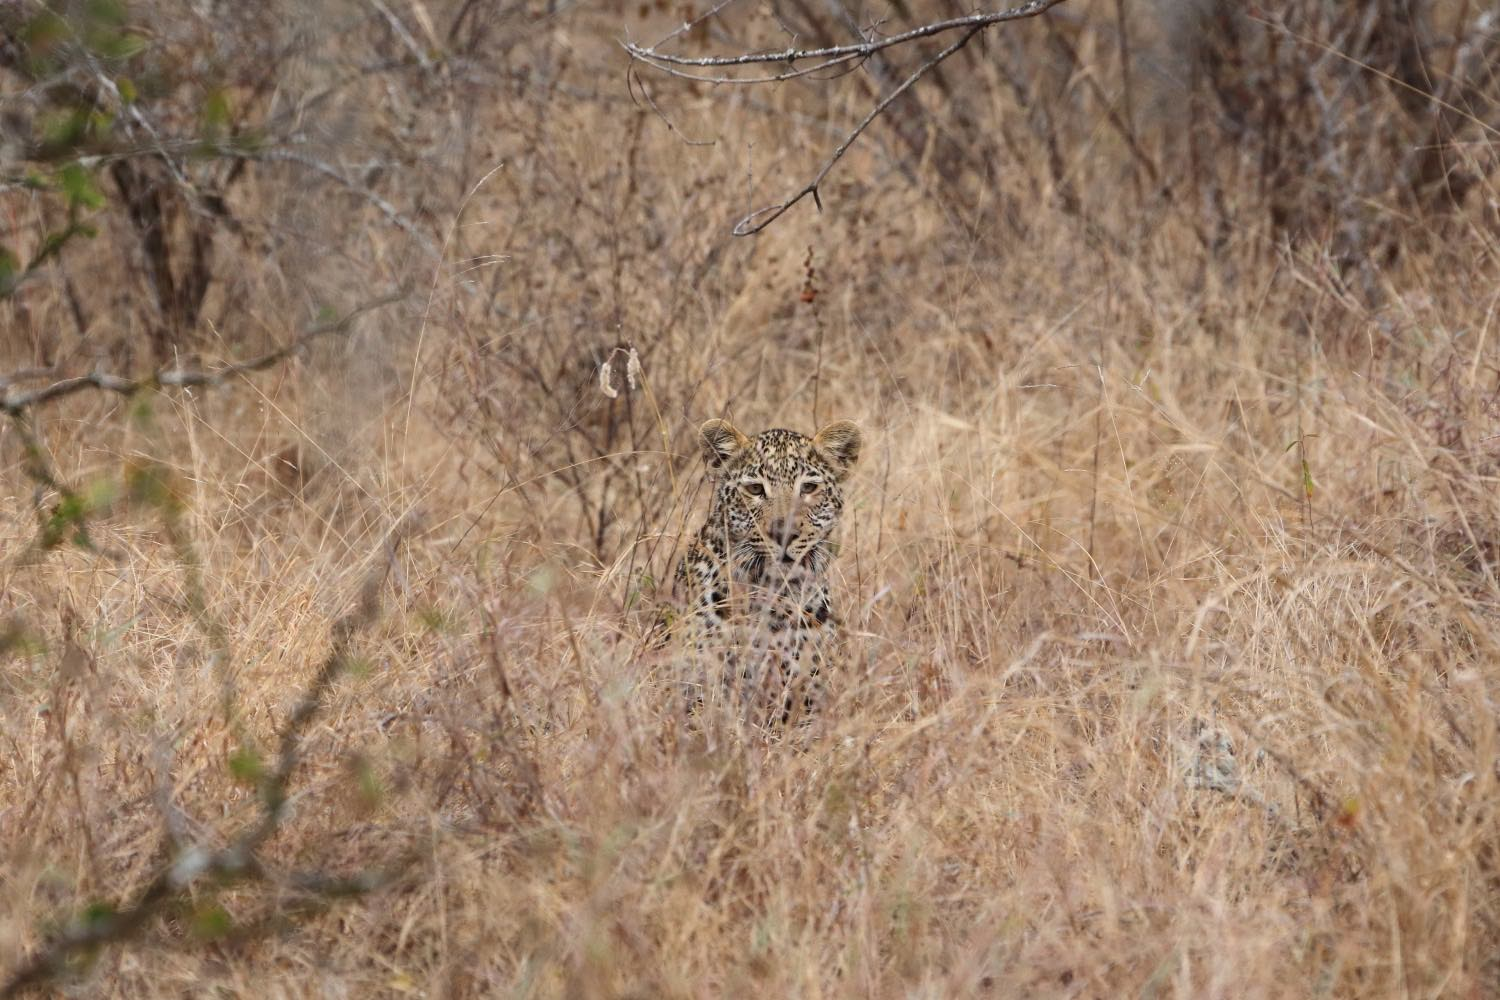 Leopard cub hiding in the bush!    Karongwe Private Game Reserve, South Africa. 13 August 2014. 1/320 s, f/8, ISO 1000, 300 mm, EOS 6D + EF 28-300L